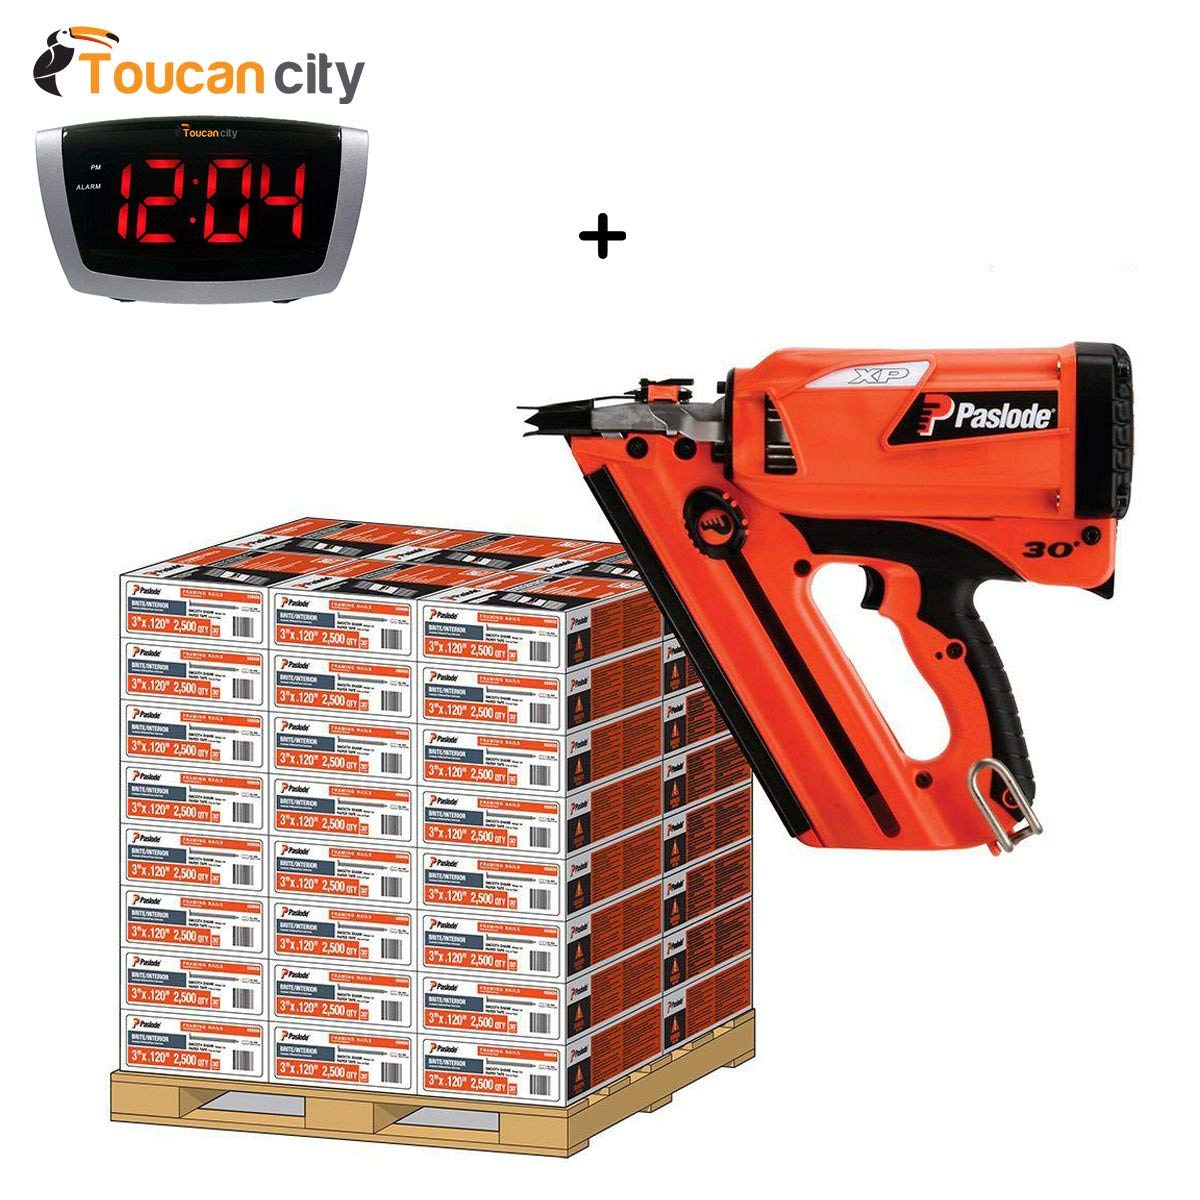 Toucan City LED Alarm clock and Paslode Pallet- 30D 3-1/4 in